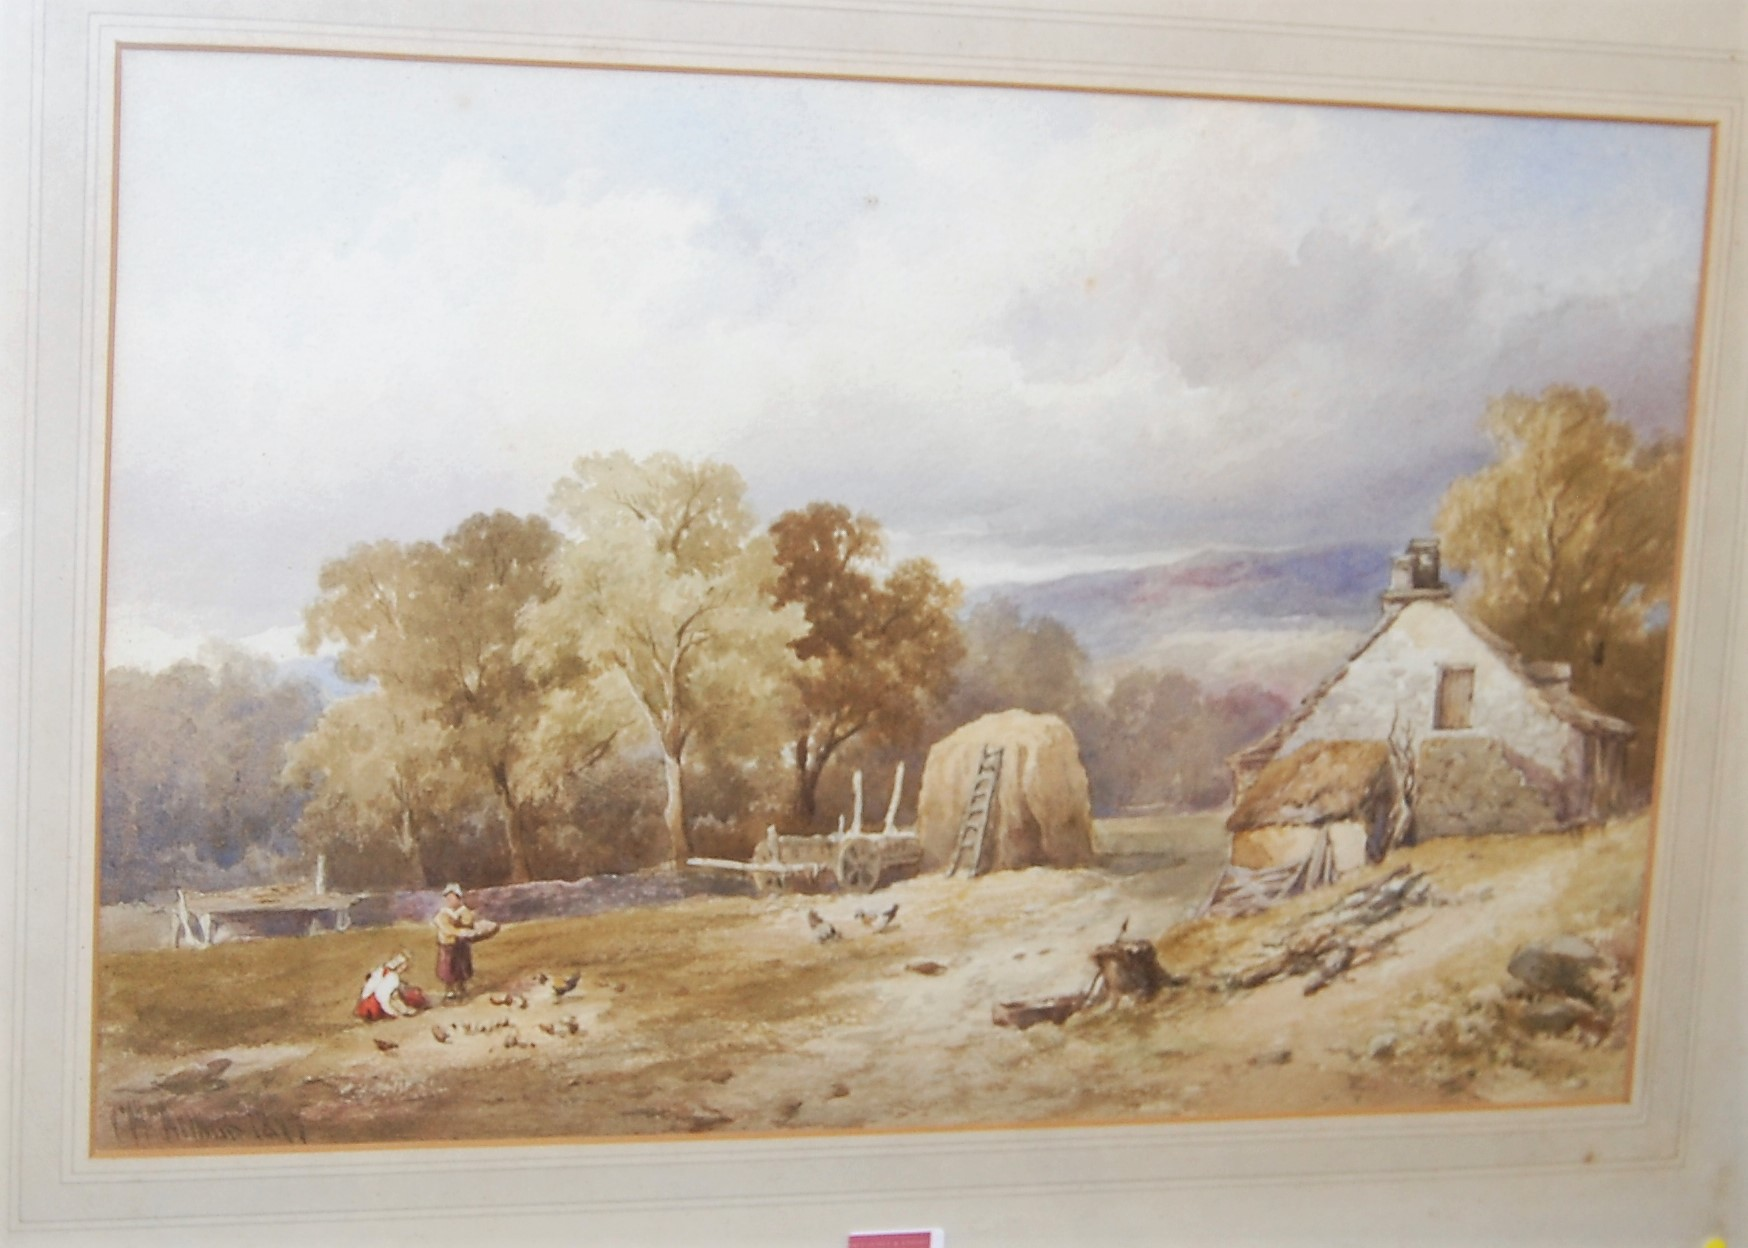 Lot 1008 - C. Arthur - Feeding the Chicks, watercolour, signed and dated 1879 lower left, 32 x 48cm